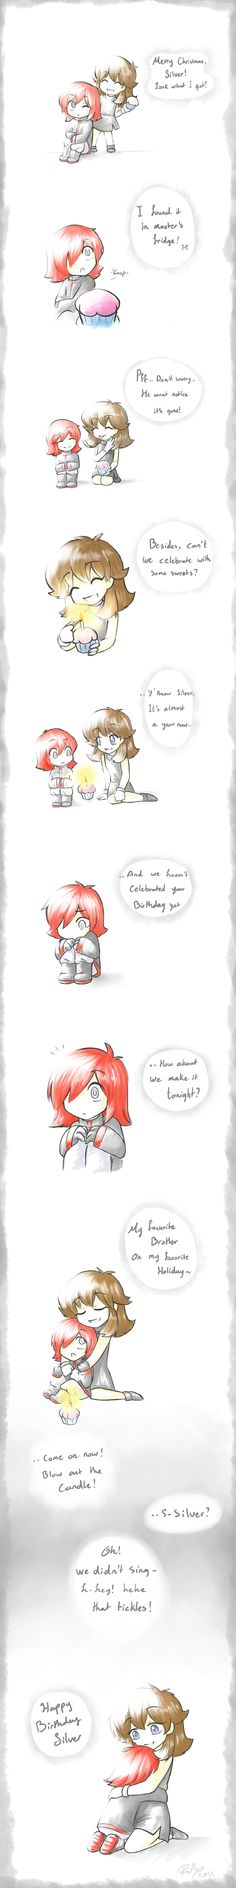 Happy Birthday Silver-kun by firehorse6 on DeviantArt